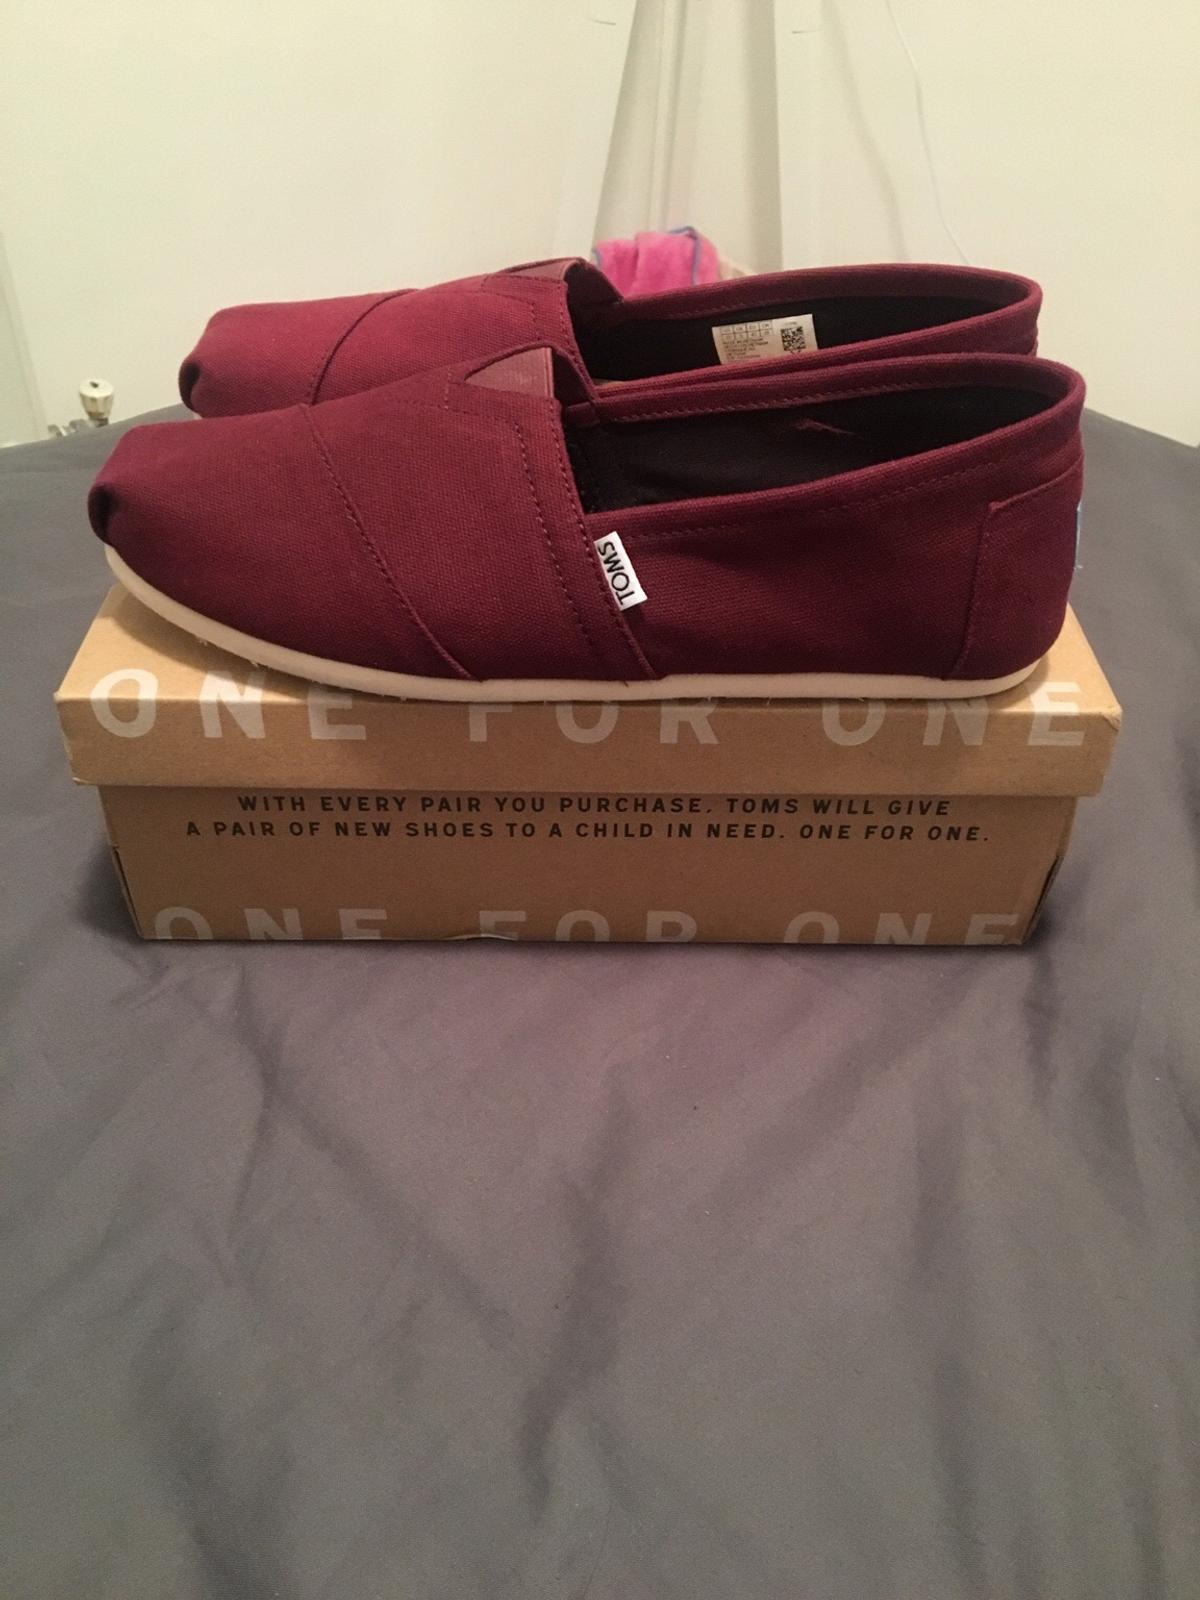 99251738c19b Toms - Size UK 9 in UB4 Ealing for £15.00 for sale - Shpock